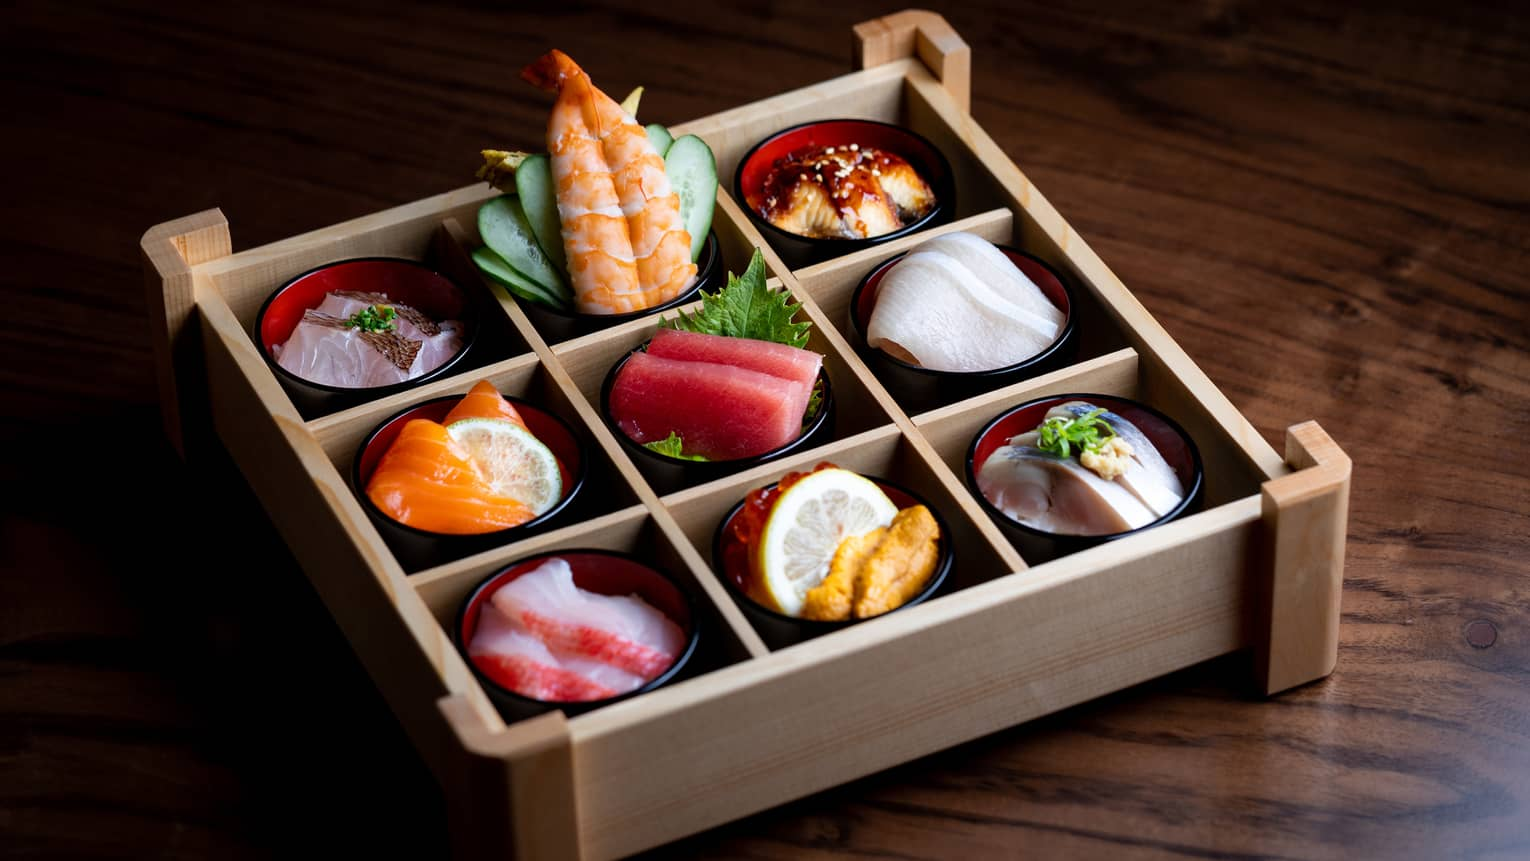 Onyx dream box from Onyx restaurant